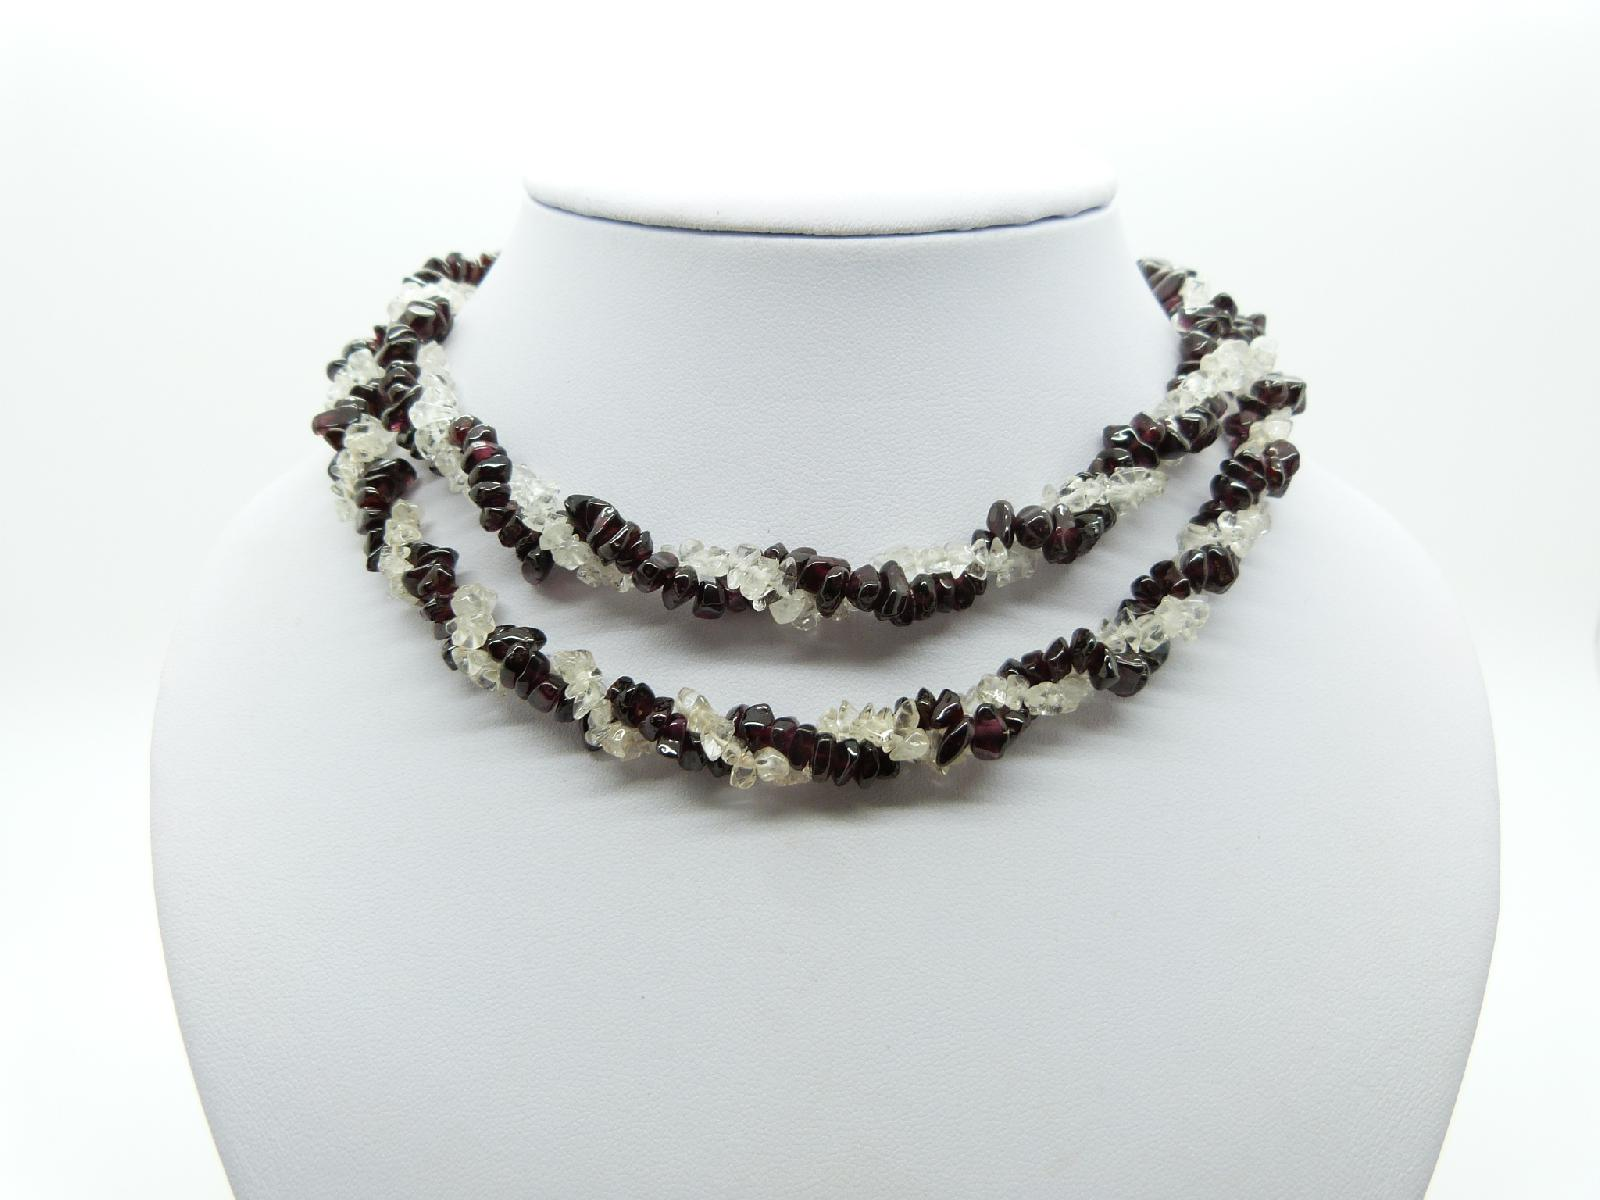 Vintage 80s Real Garnet and White Quartz Bead Two Row Twist Necklace 84cms